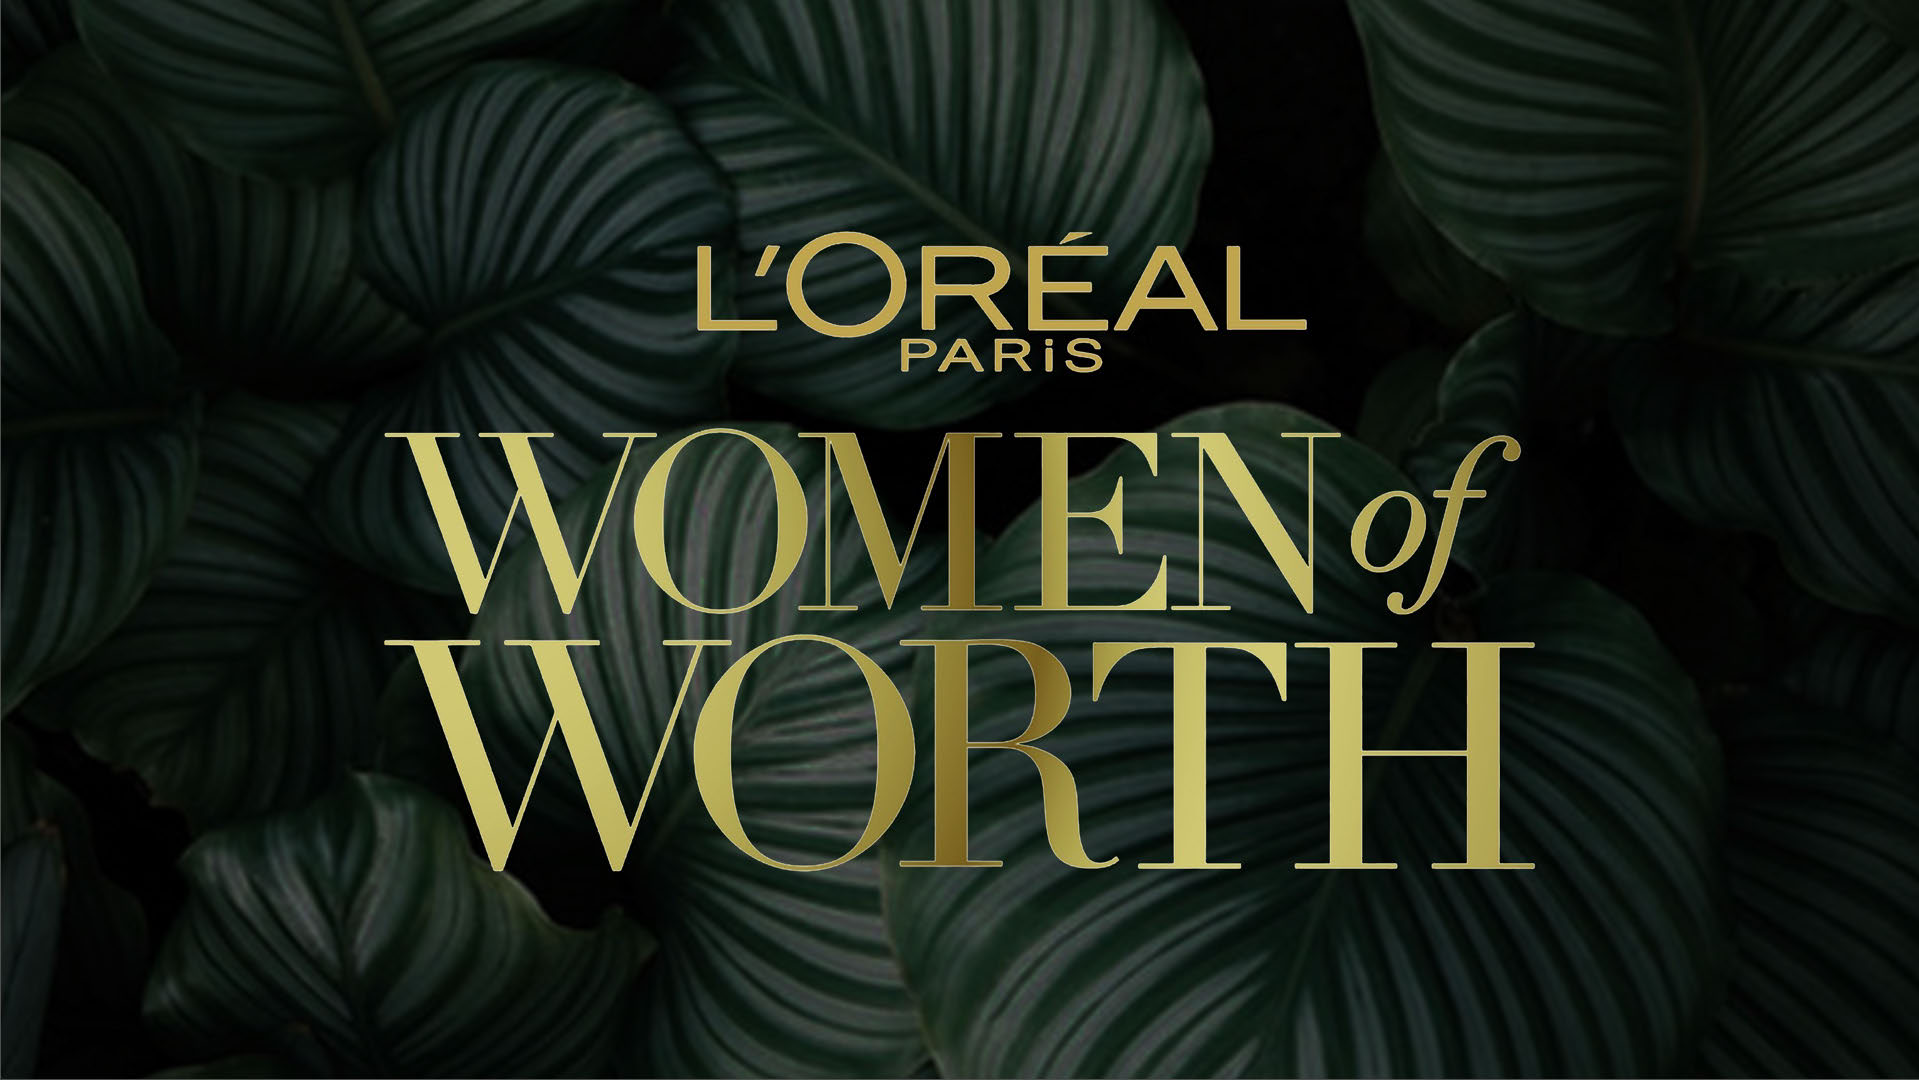 L'Oreal - Women of Worth - During my time as an Intern at NVE: The Experience Agency, a branding & marketing agency, I was an 'Event Designer' for my intern project.